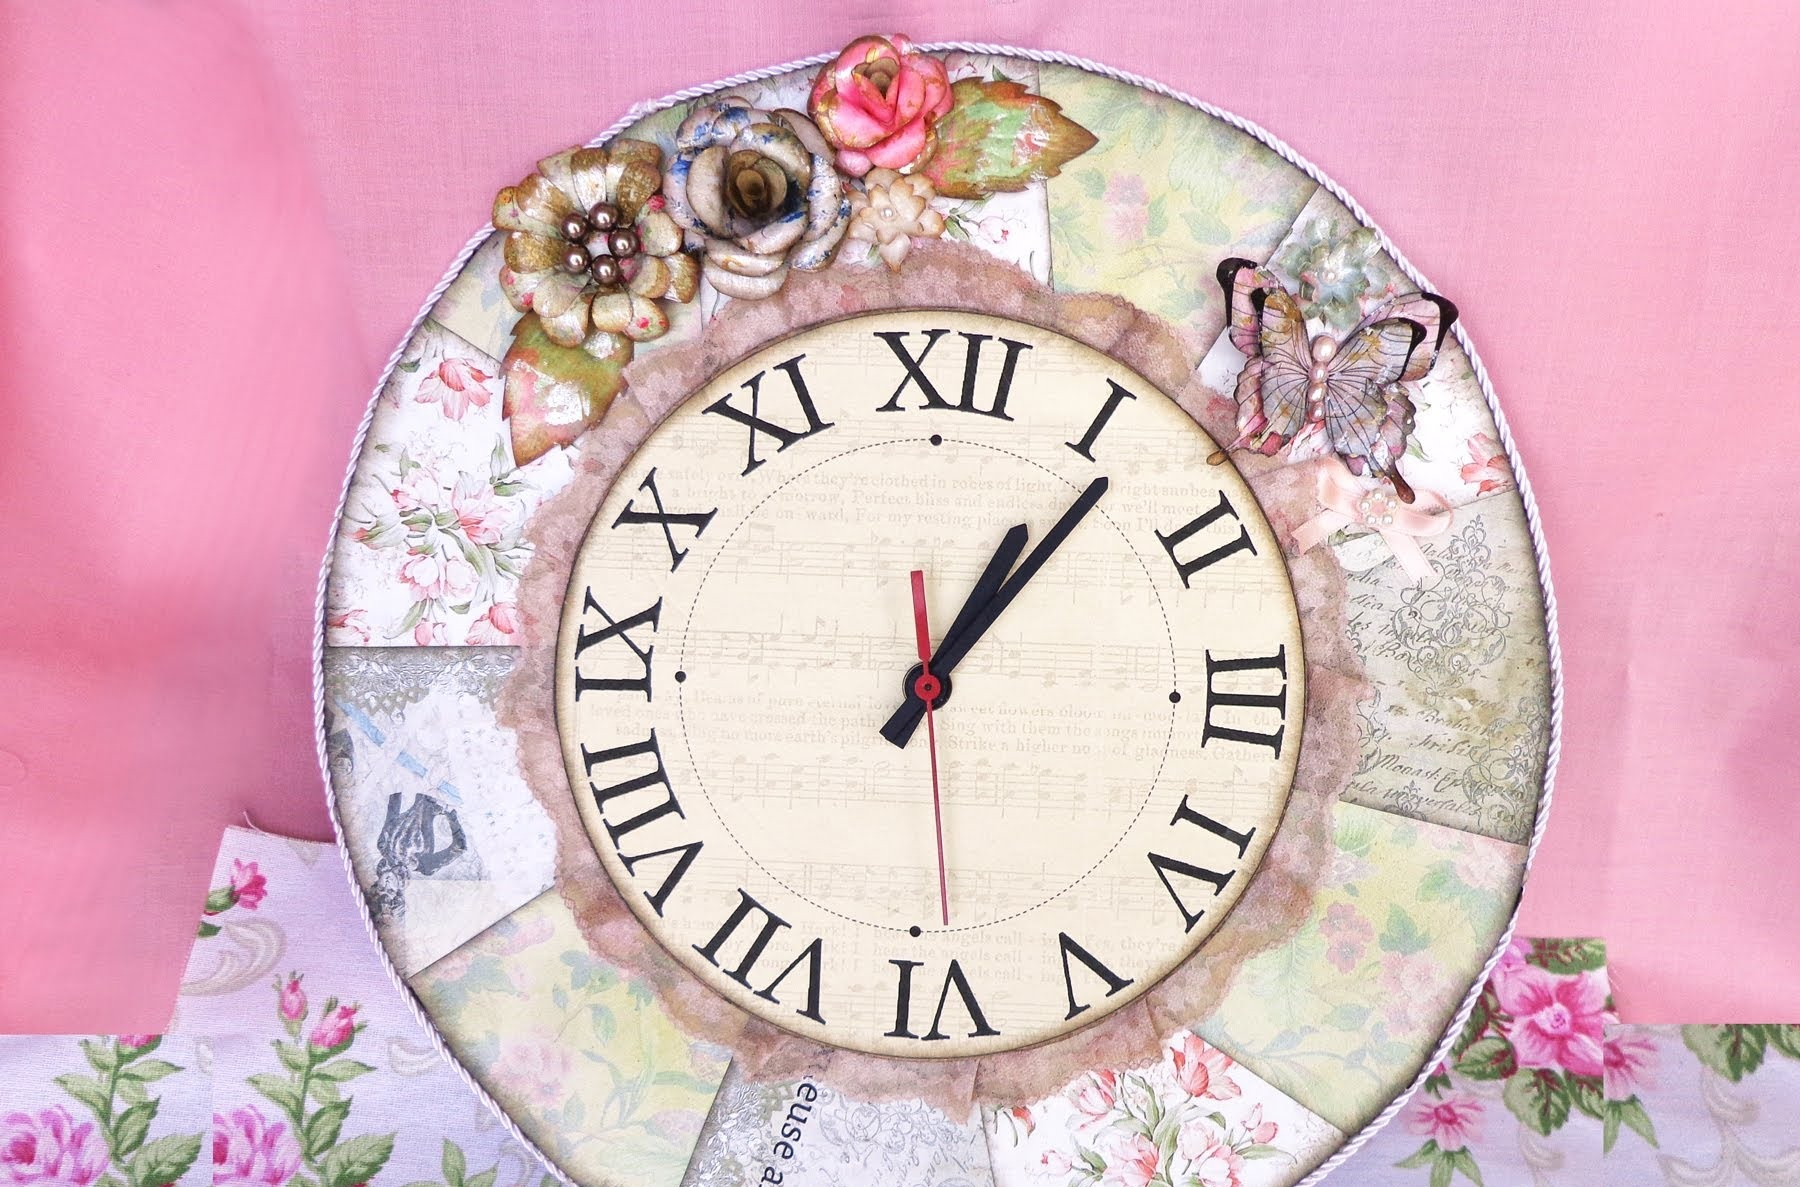 Come costruire un orologio in stile shabby chic video for Cornici shabby fai da te